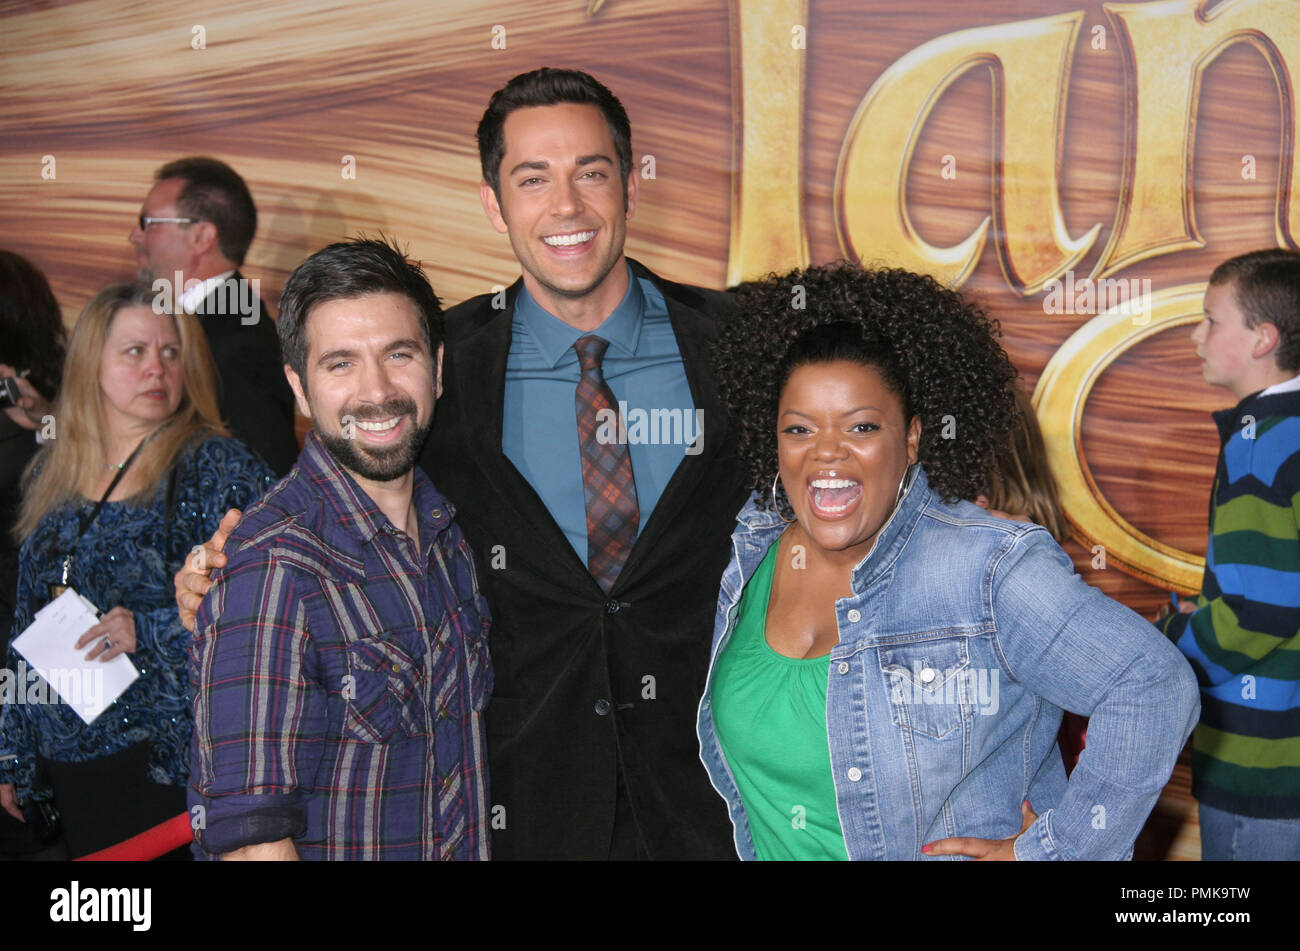 Joshua Gomez High Resolution Stock Photography And Images Alamy Browse joshua gomez movies and tv shows available on prime video and begin streaming right joshua gomez was born on november 20, 1975 in bayonne, new jersey, usa as joshua eli gomez. https www alamy com joshua gomez zachary levi yvette nicole brown 111410 tangled premiere el capitan theatre hollywood ph ima kurodahnw picturelux file reference 30700 117plx for editorial use only all rights reserved image219242377 html